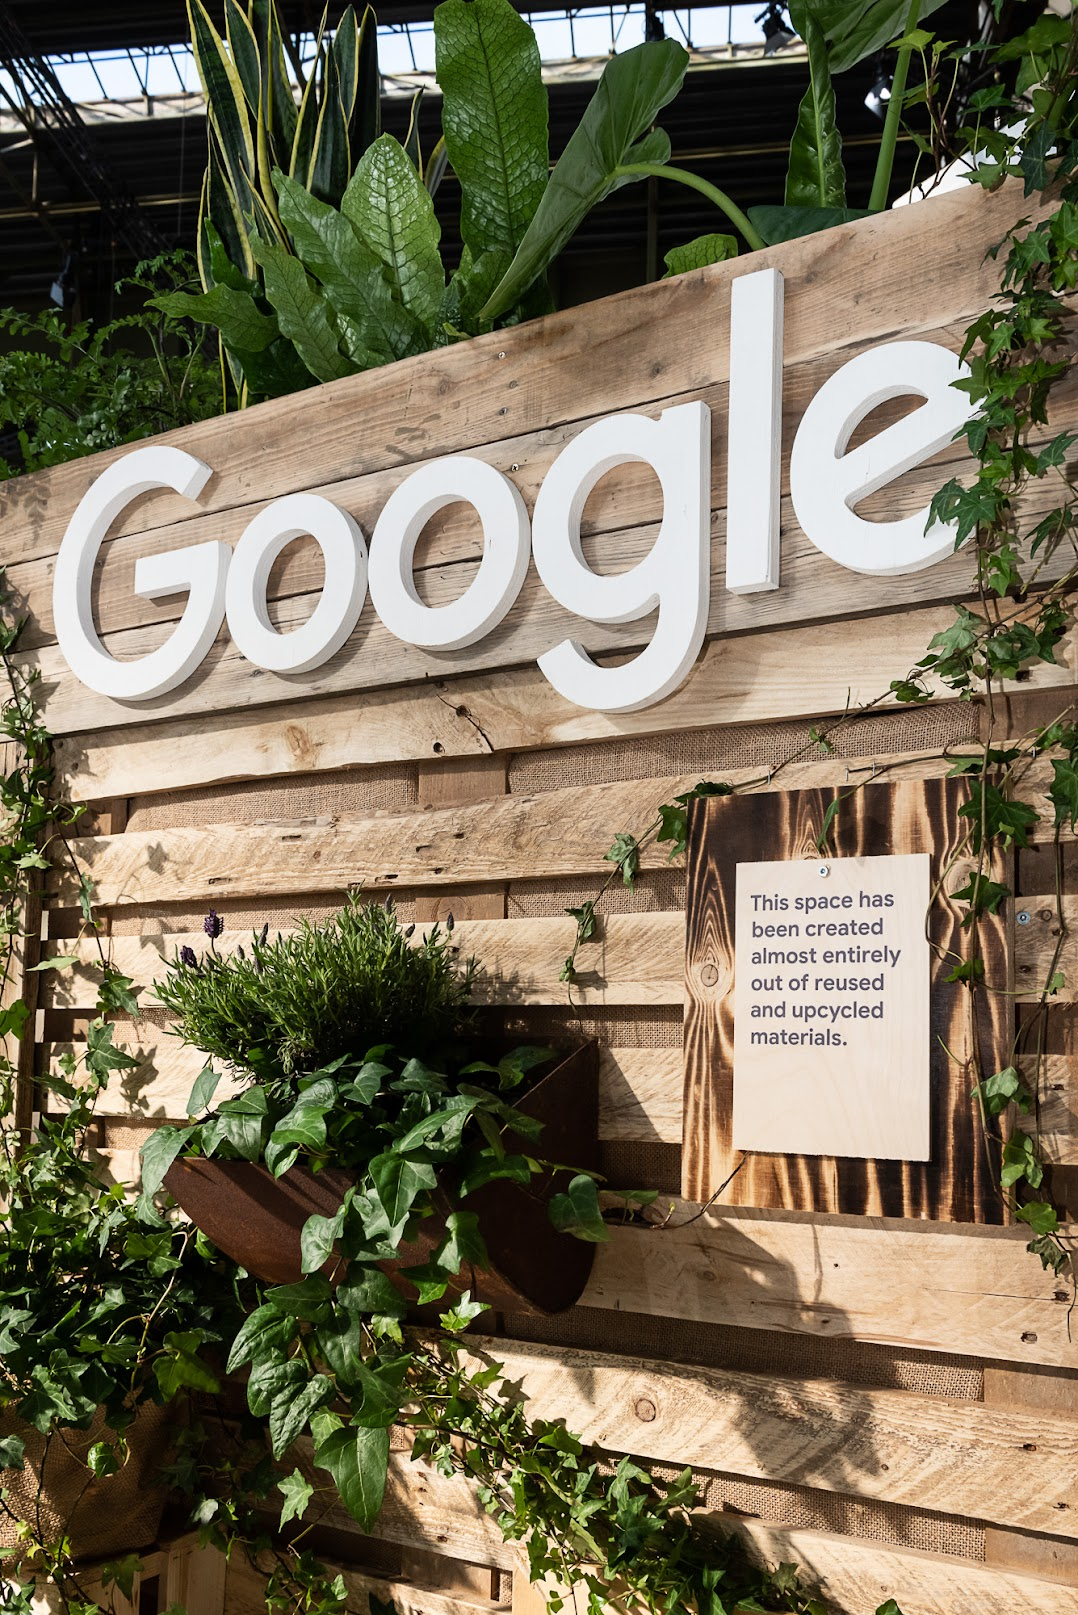 Google's booth at the Greentech Festival in Berlin, Germany in May 2019 designed by Dusty Reid, Marketing Events Manager for Google Earth. The wood used is from shipping pallets that have been cleaned and sanded, or from demolished houses.